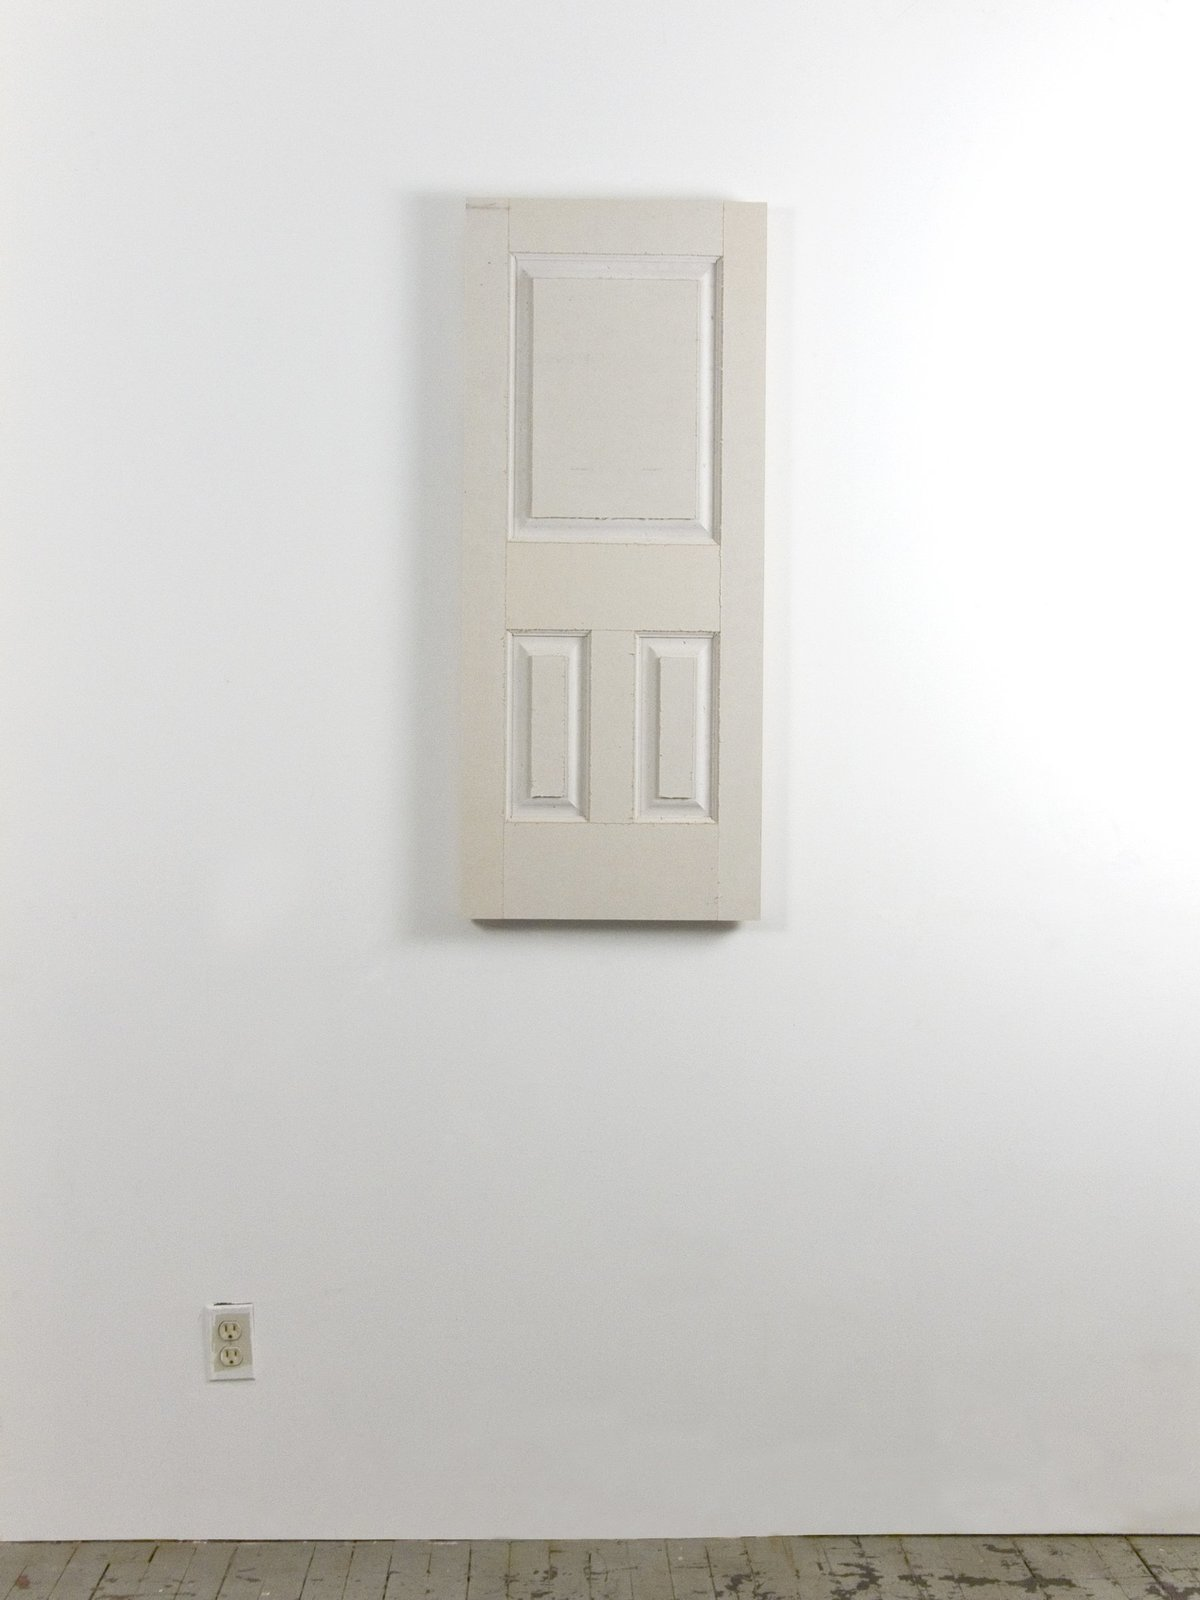 Noah Loesberg, Drywall Door, 2007